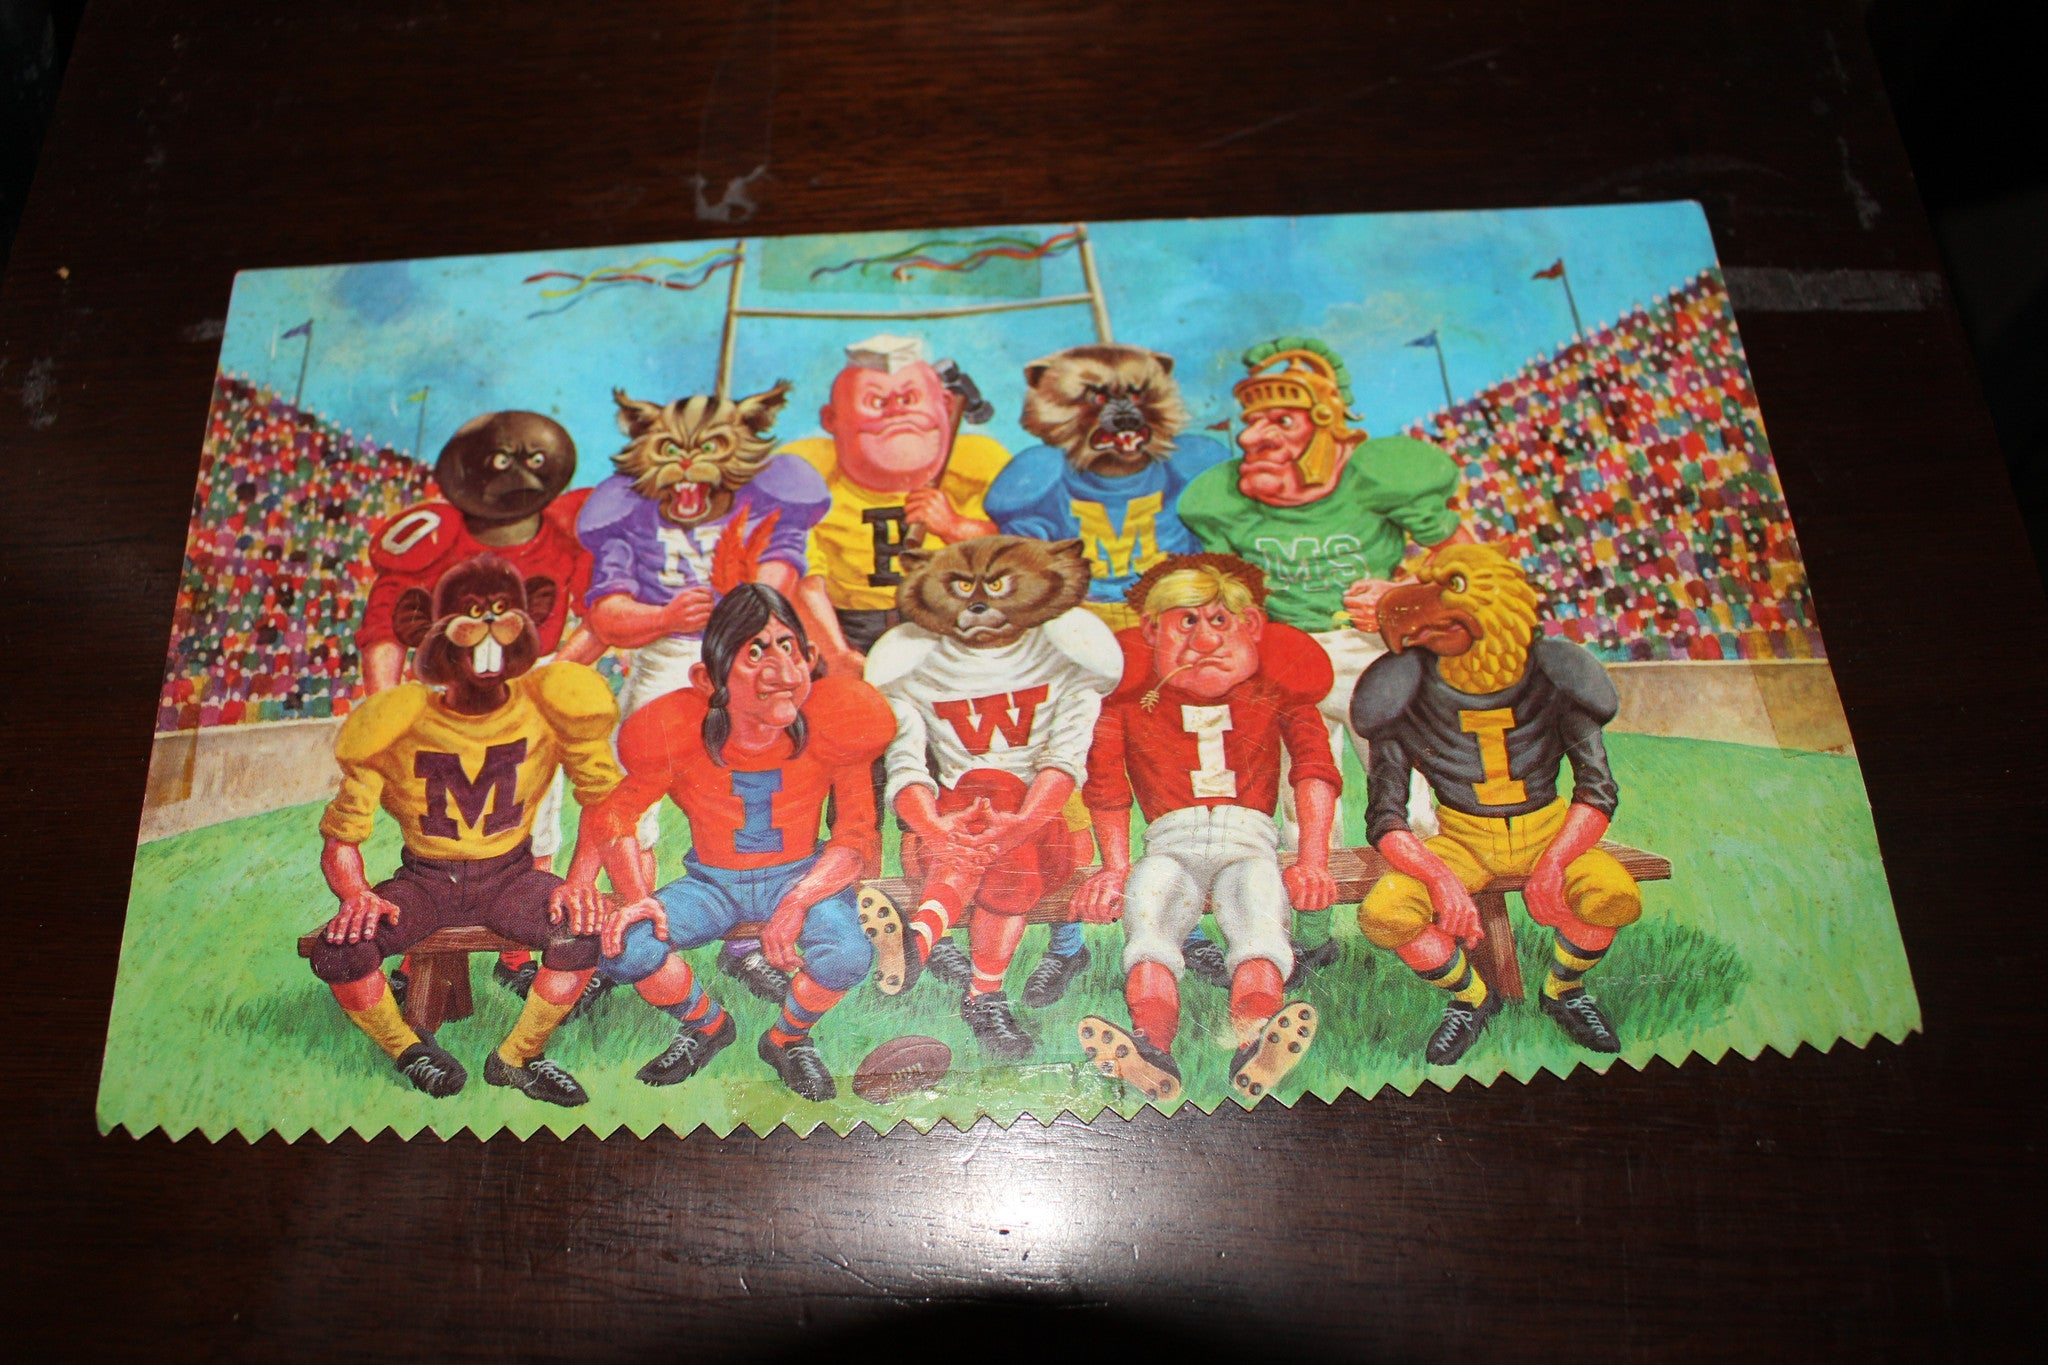 Vintage Big Ten Conference Oversized Postcard - Vintage Indy Sports